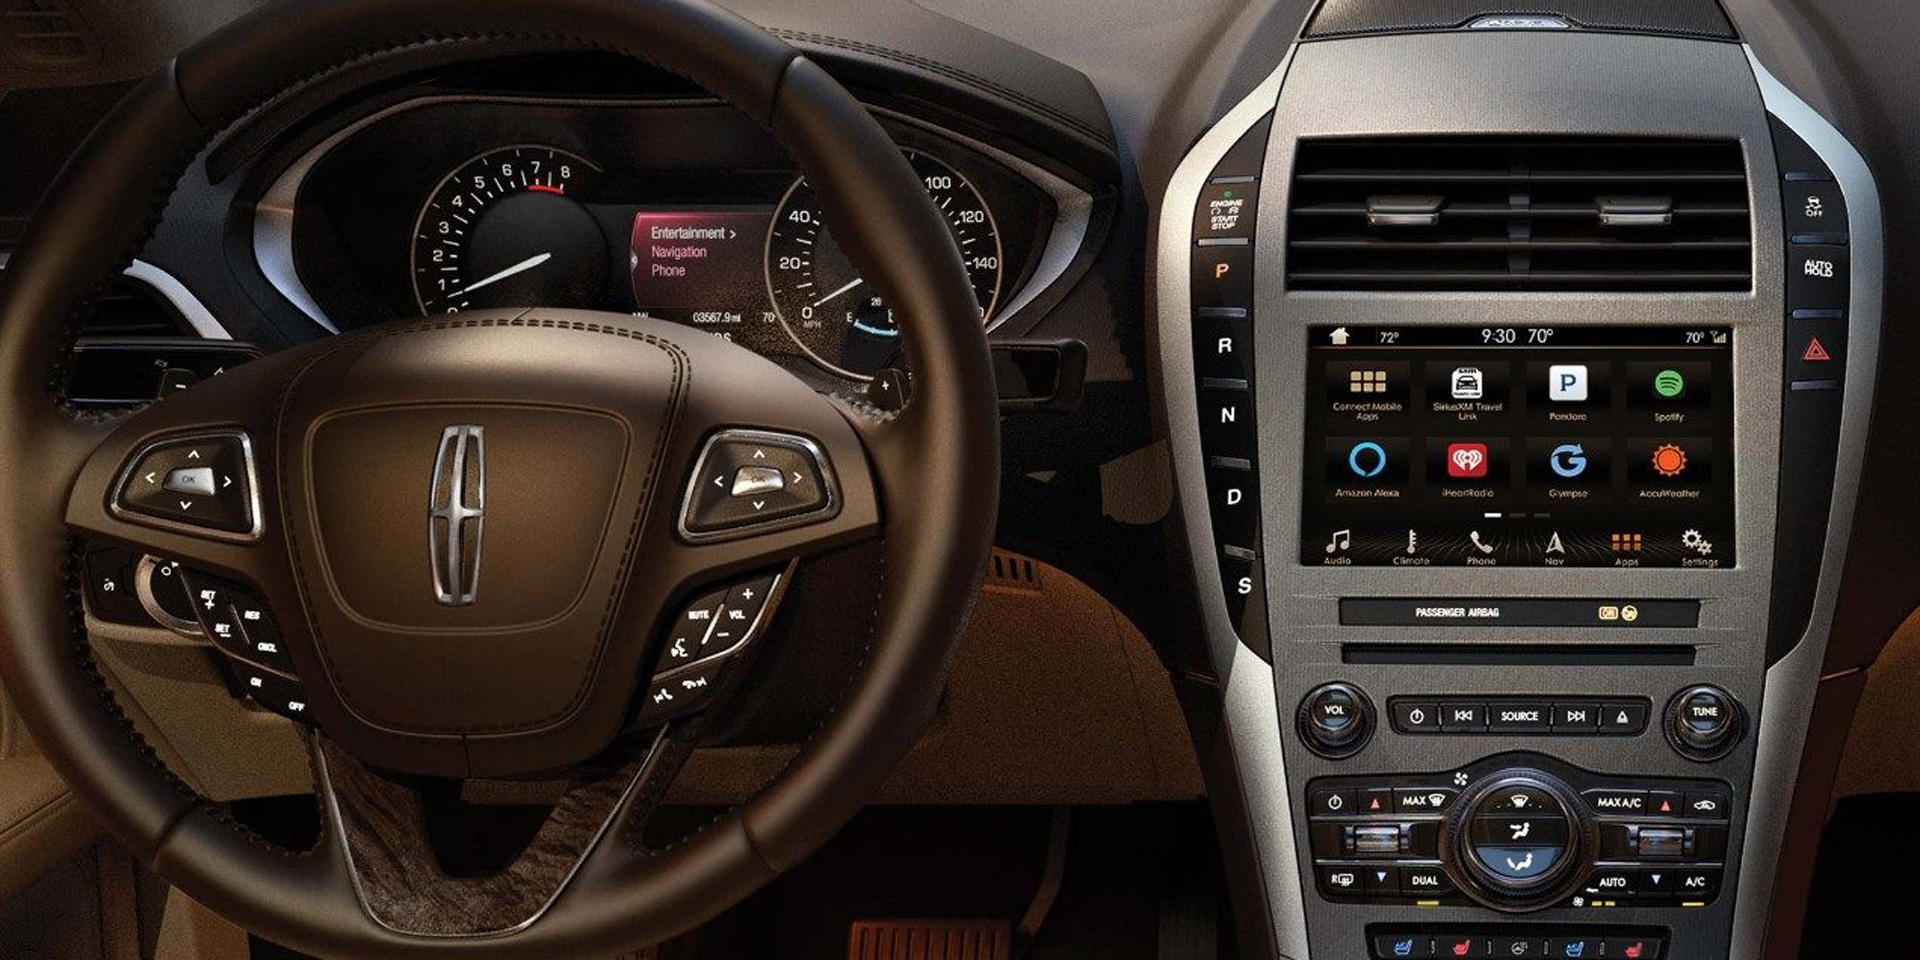 2019 - Lincoln - MKZ - Vehicles on Display | Chicago Auto Show